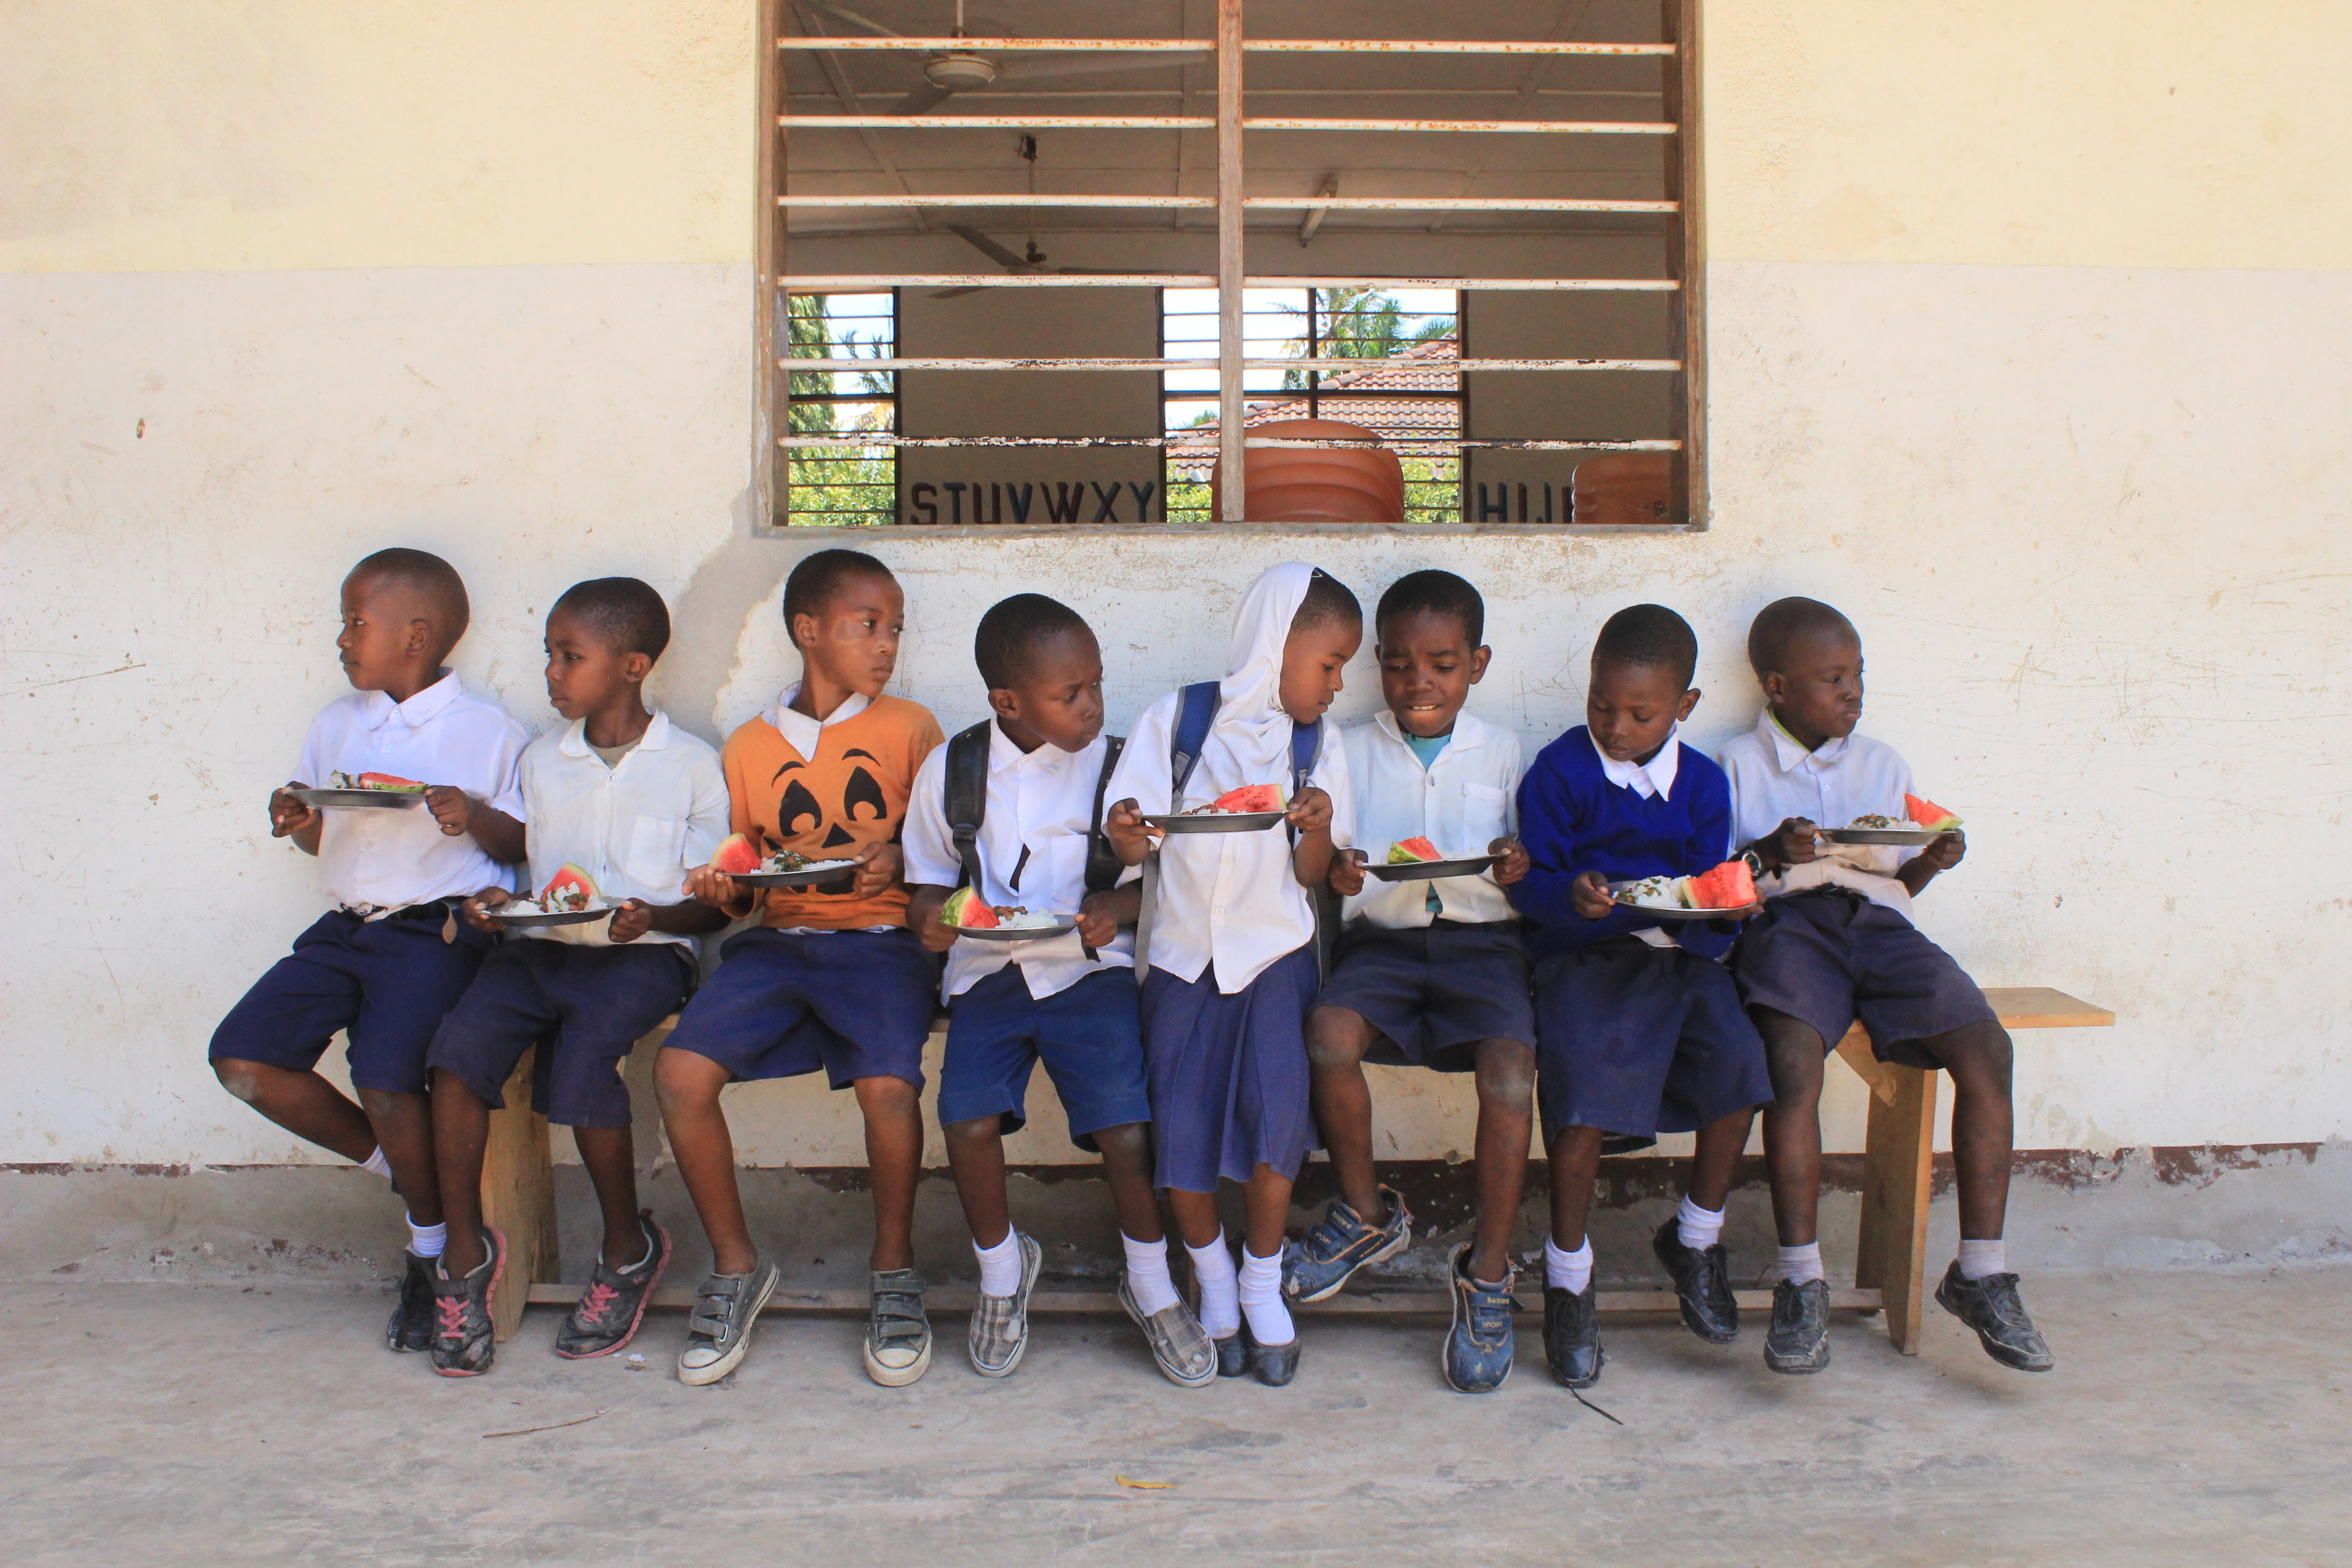 students at a school in Tanzania